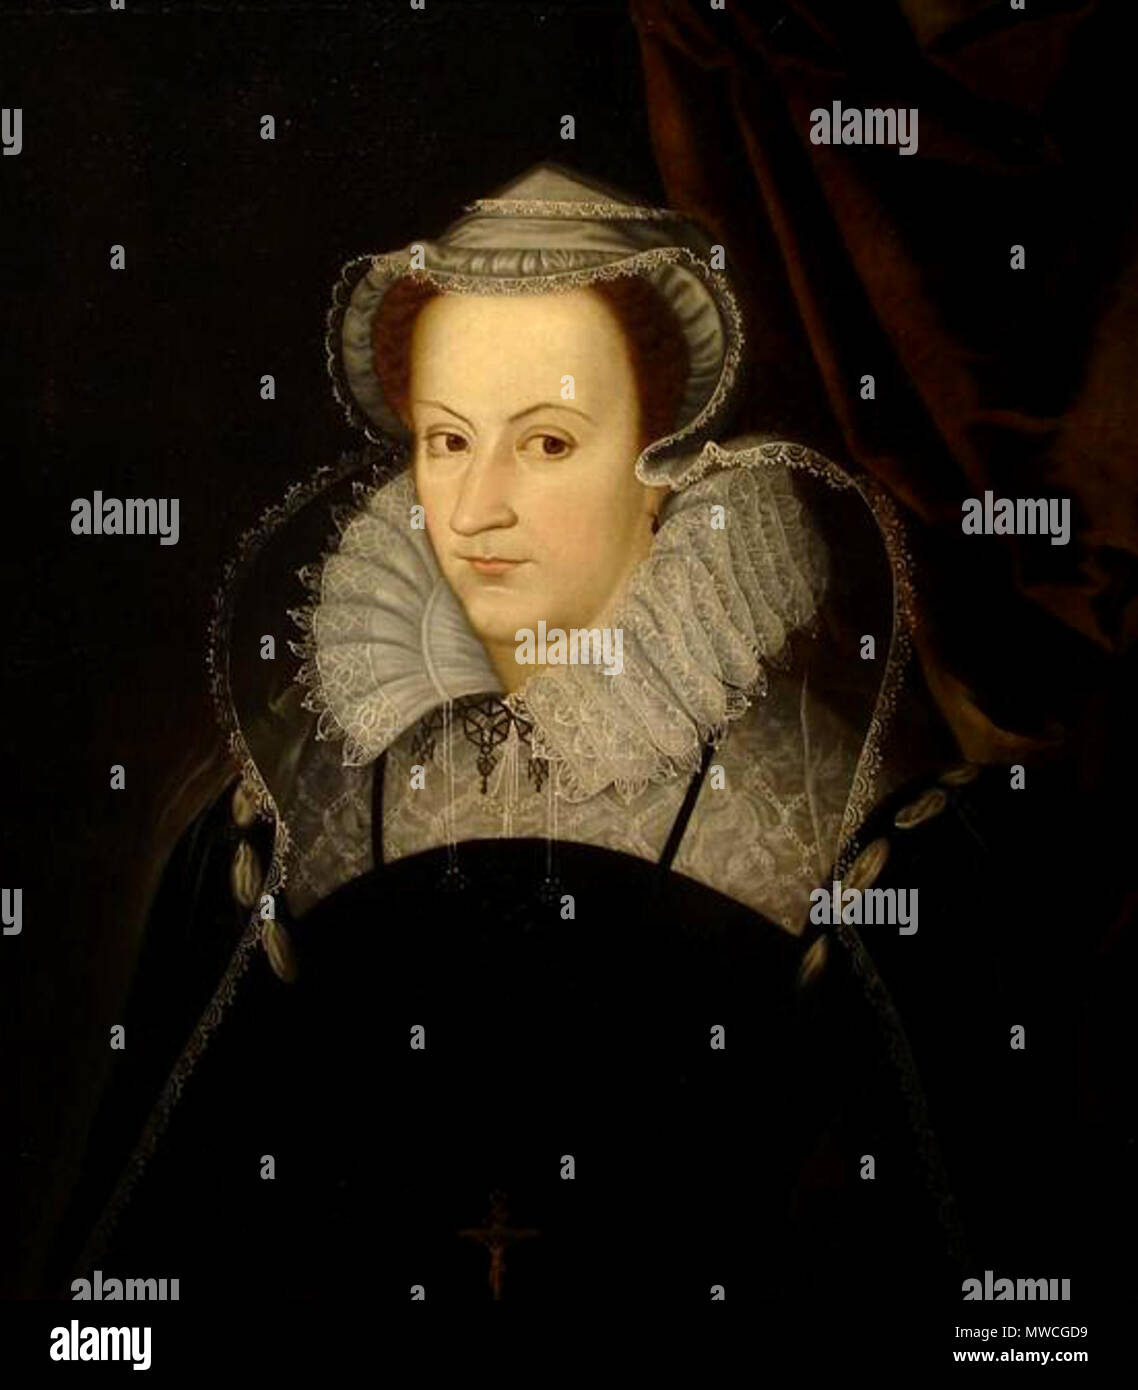 innocence mary stuart queen scots Mary queen of scots follows mary stuart's attempt to overthrow her cousin elizabeth i, queen of england, which winds up getting her condemned to prison prior to her execution.